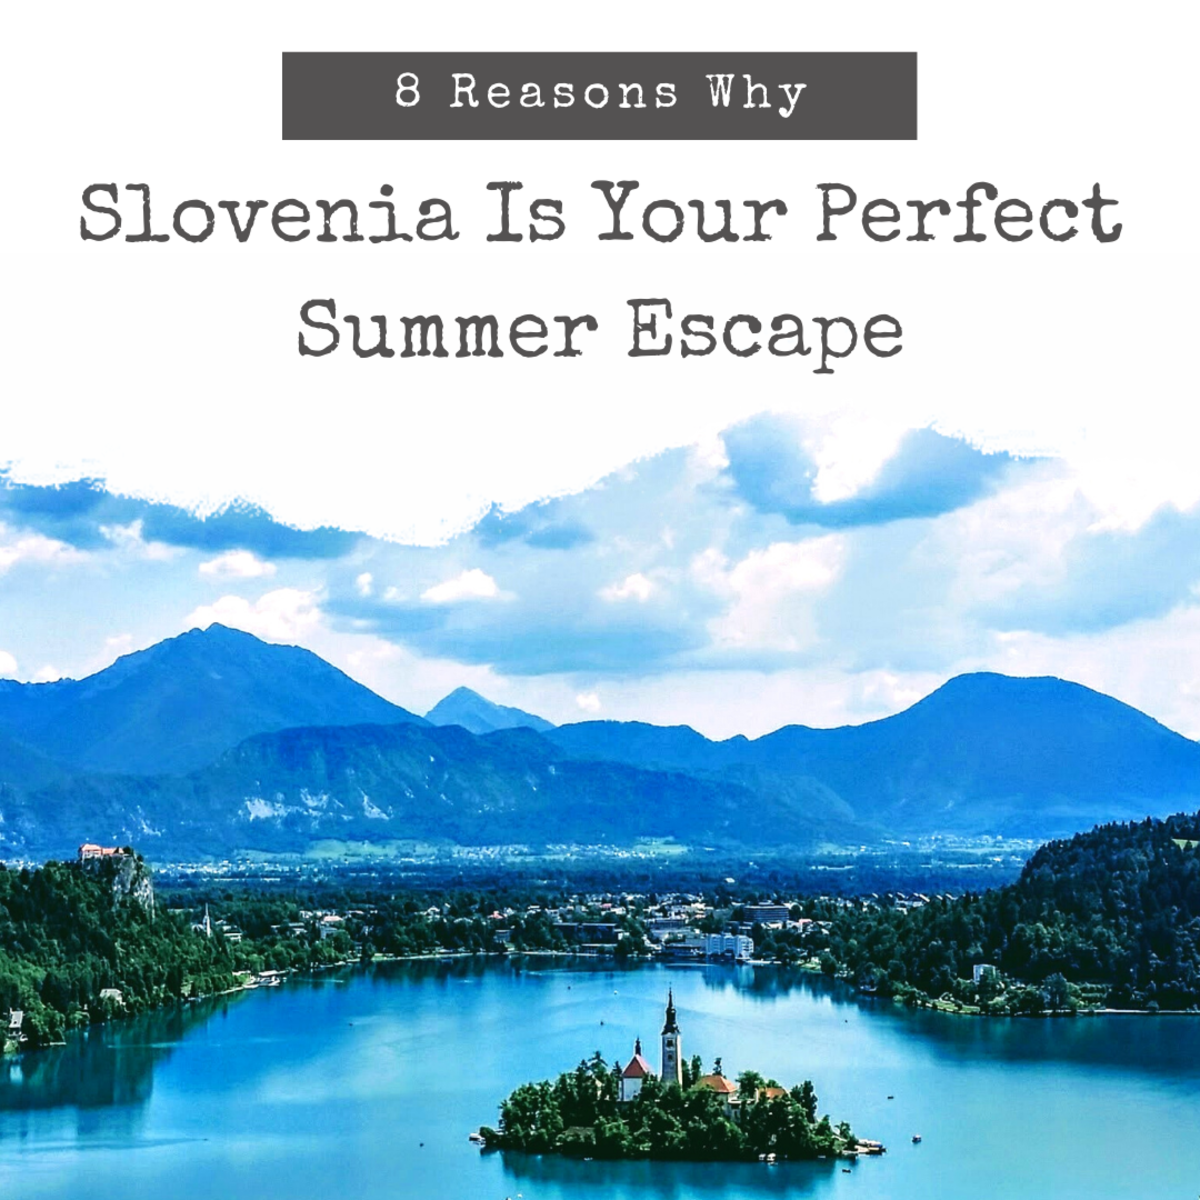 Slovenia: 8 Reasons Why It Is Your Perfect Summer Escape